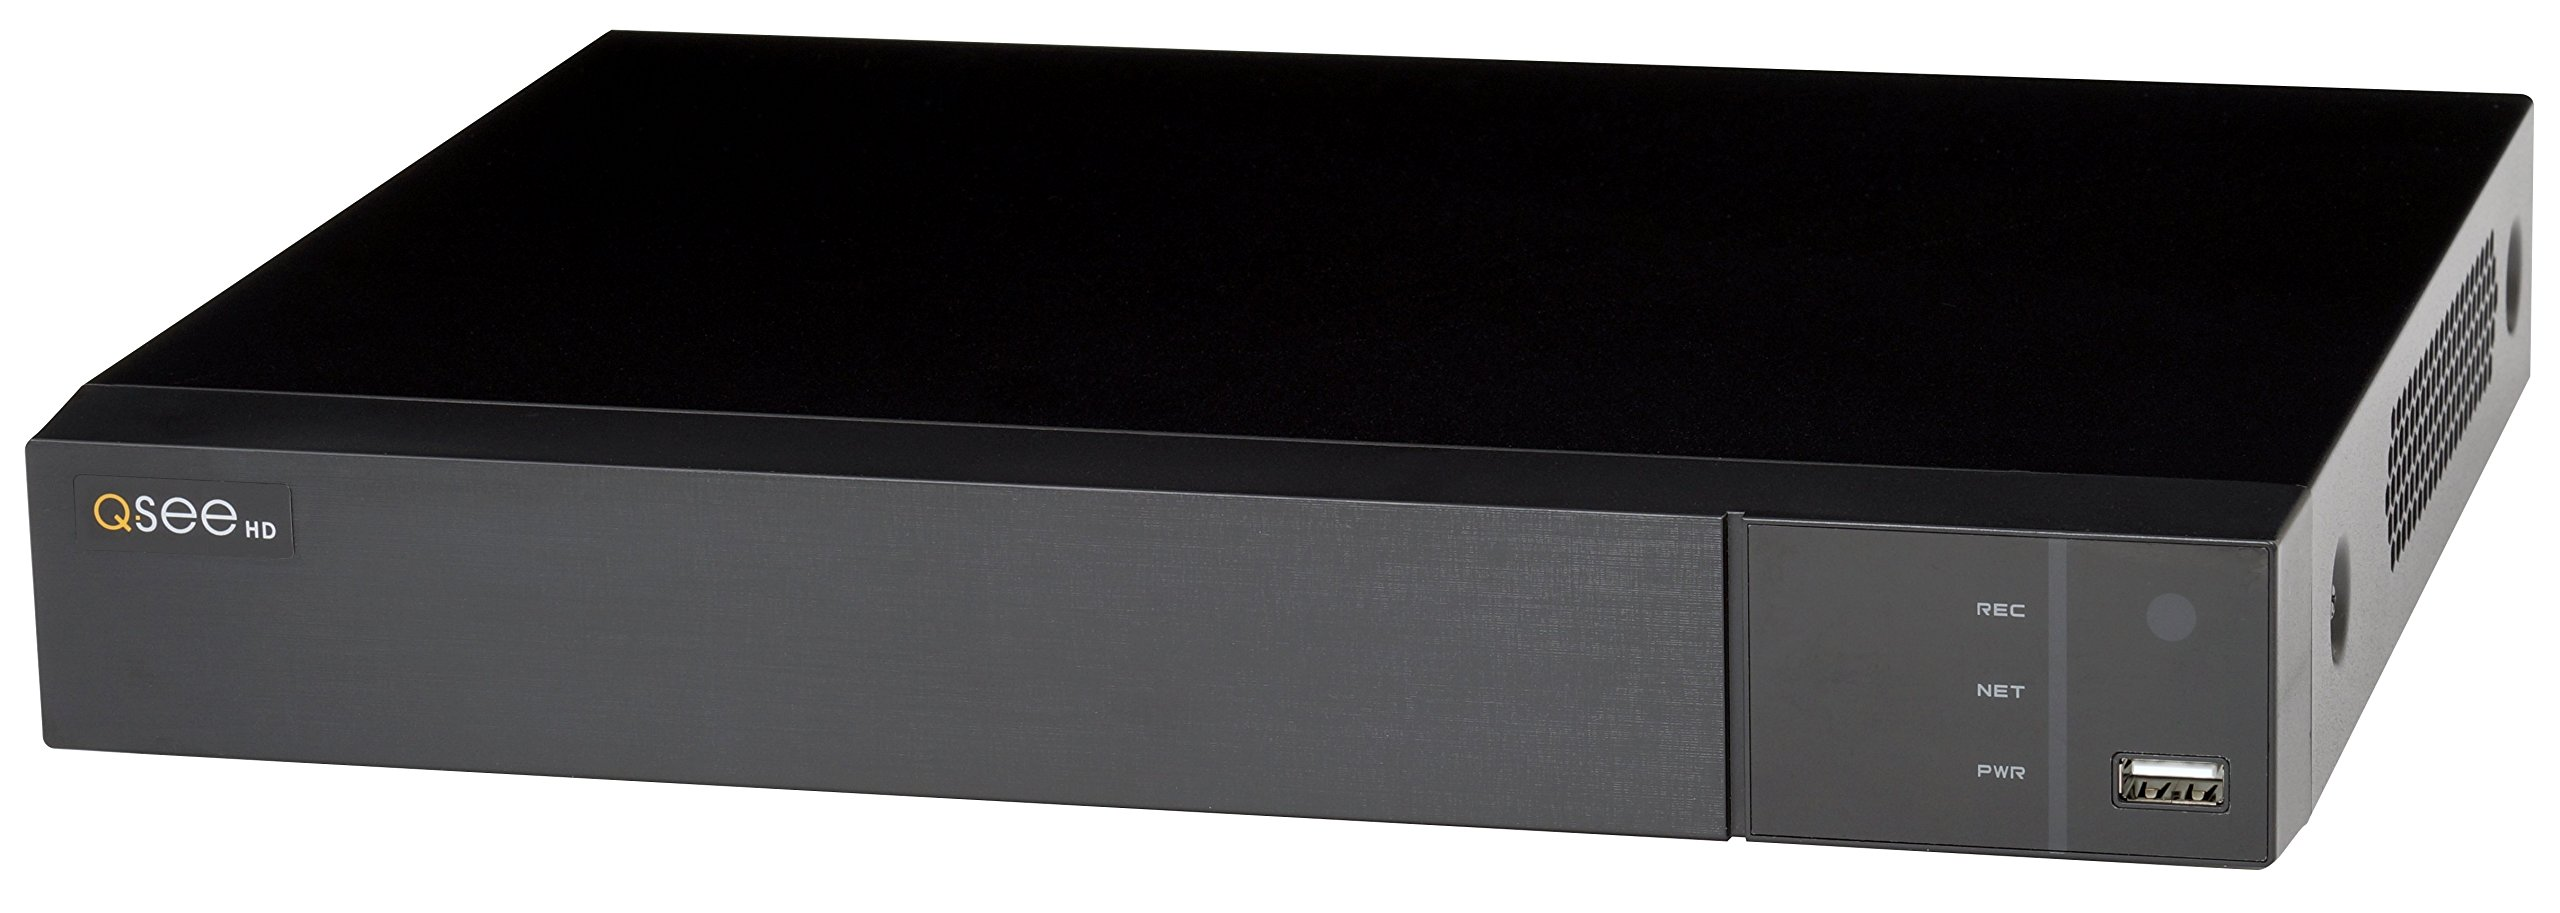 Q-See QTH916-2 | 16-Channel 1080p PIR Enabled HD Analog DVR with 2TB Hard Drive | BNC Surveillance Recorder | Smartphones & Tablets Connect to DVR for Instant Live Viewing | Black